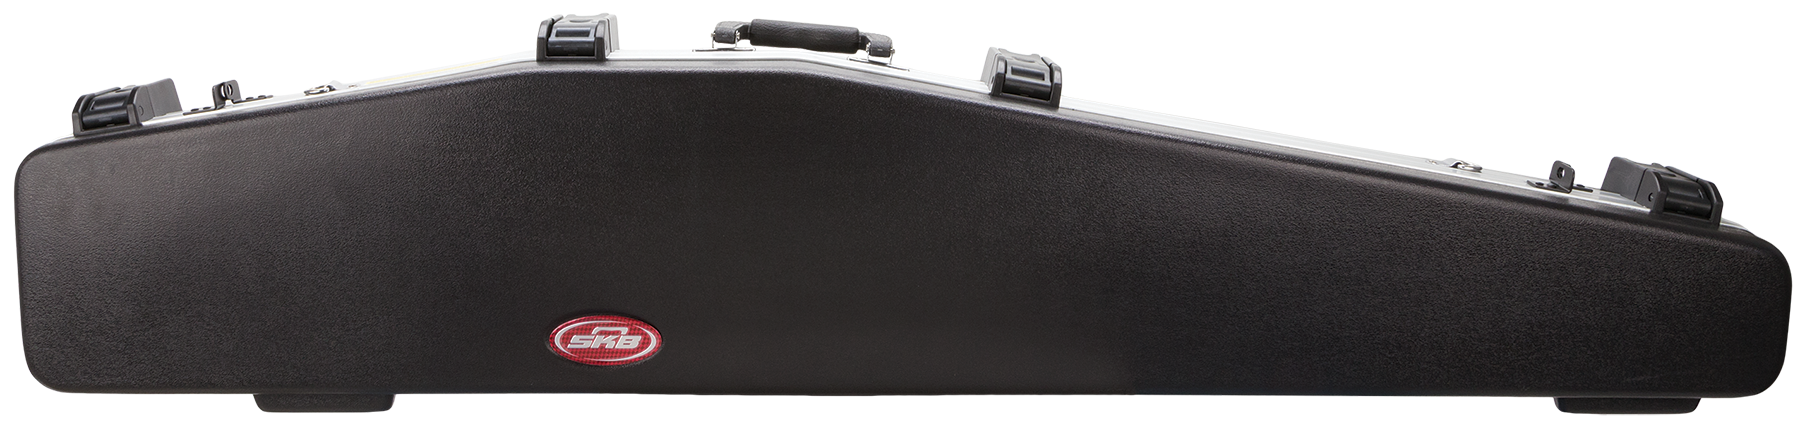 SKB ATA Scoped Hard Rifle Case 48